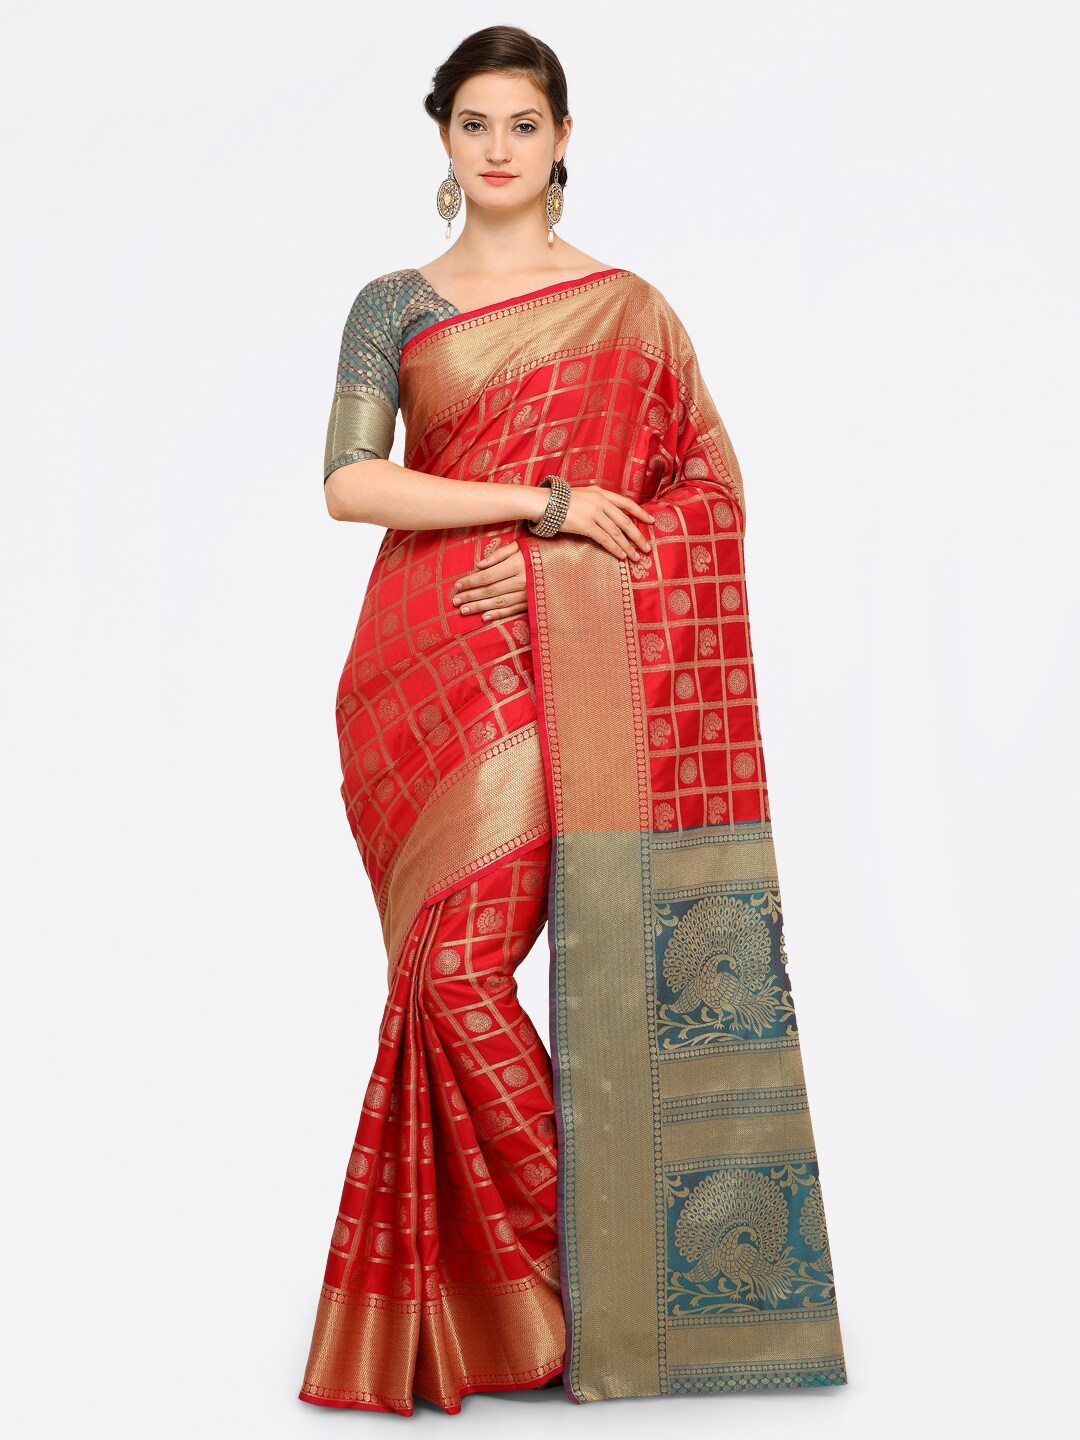 7e394633fe3d6 Silk Sarees Kurtas - Buy Silk Sarees Kurtas online in India